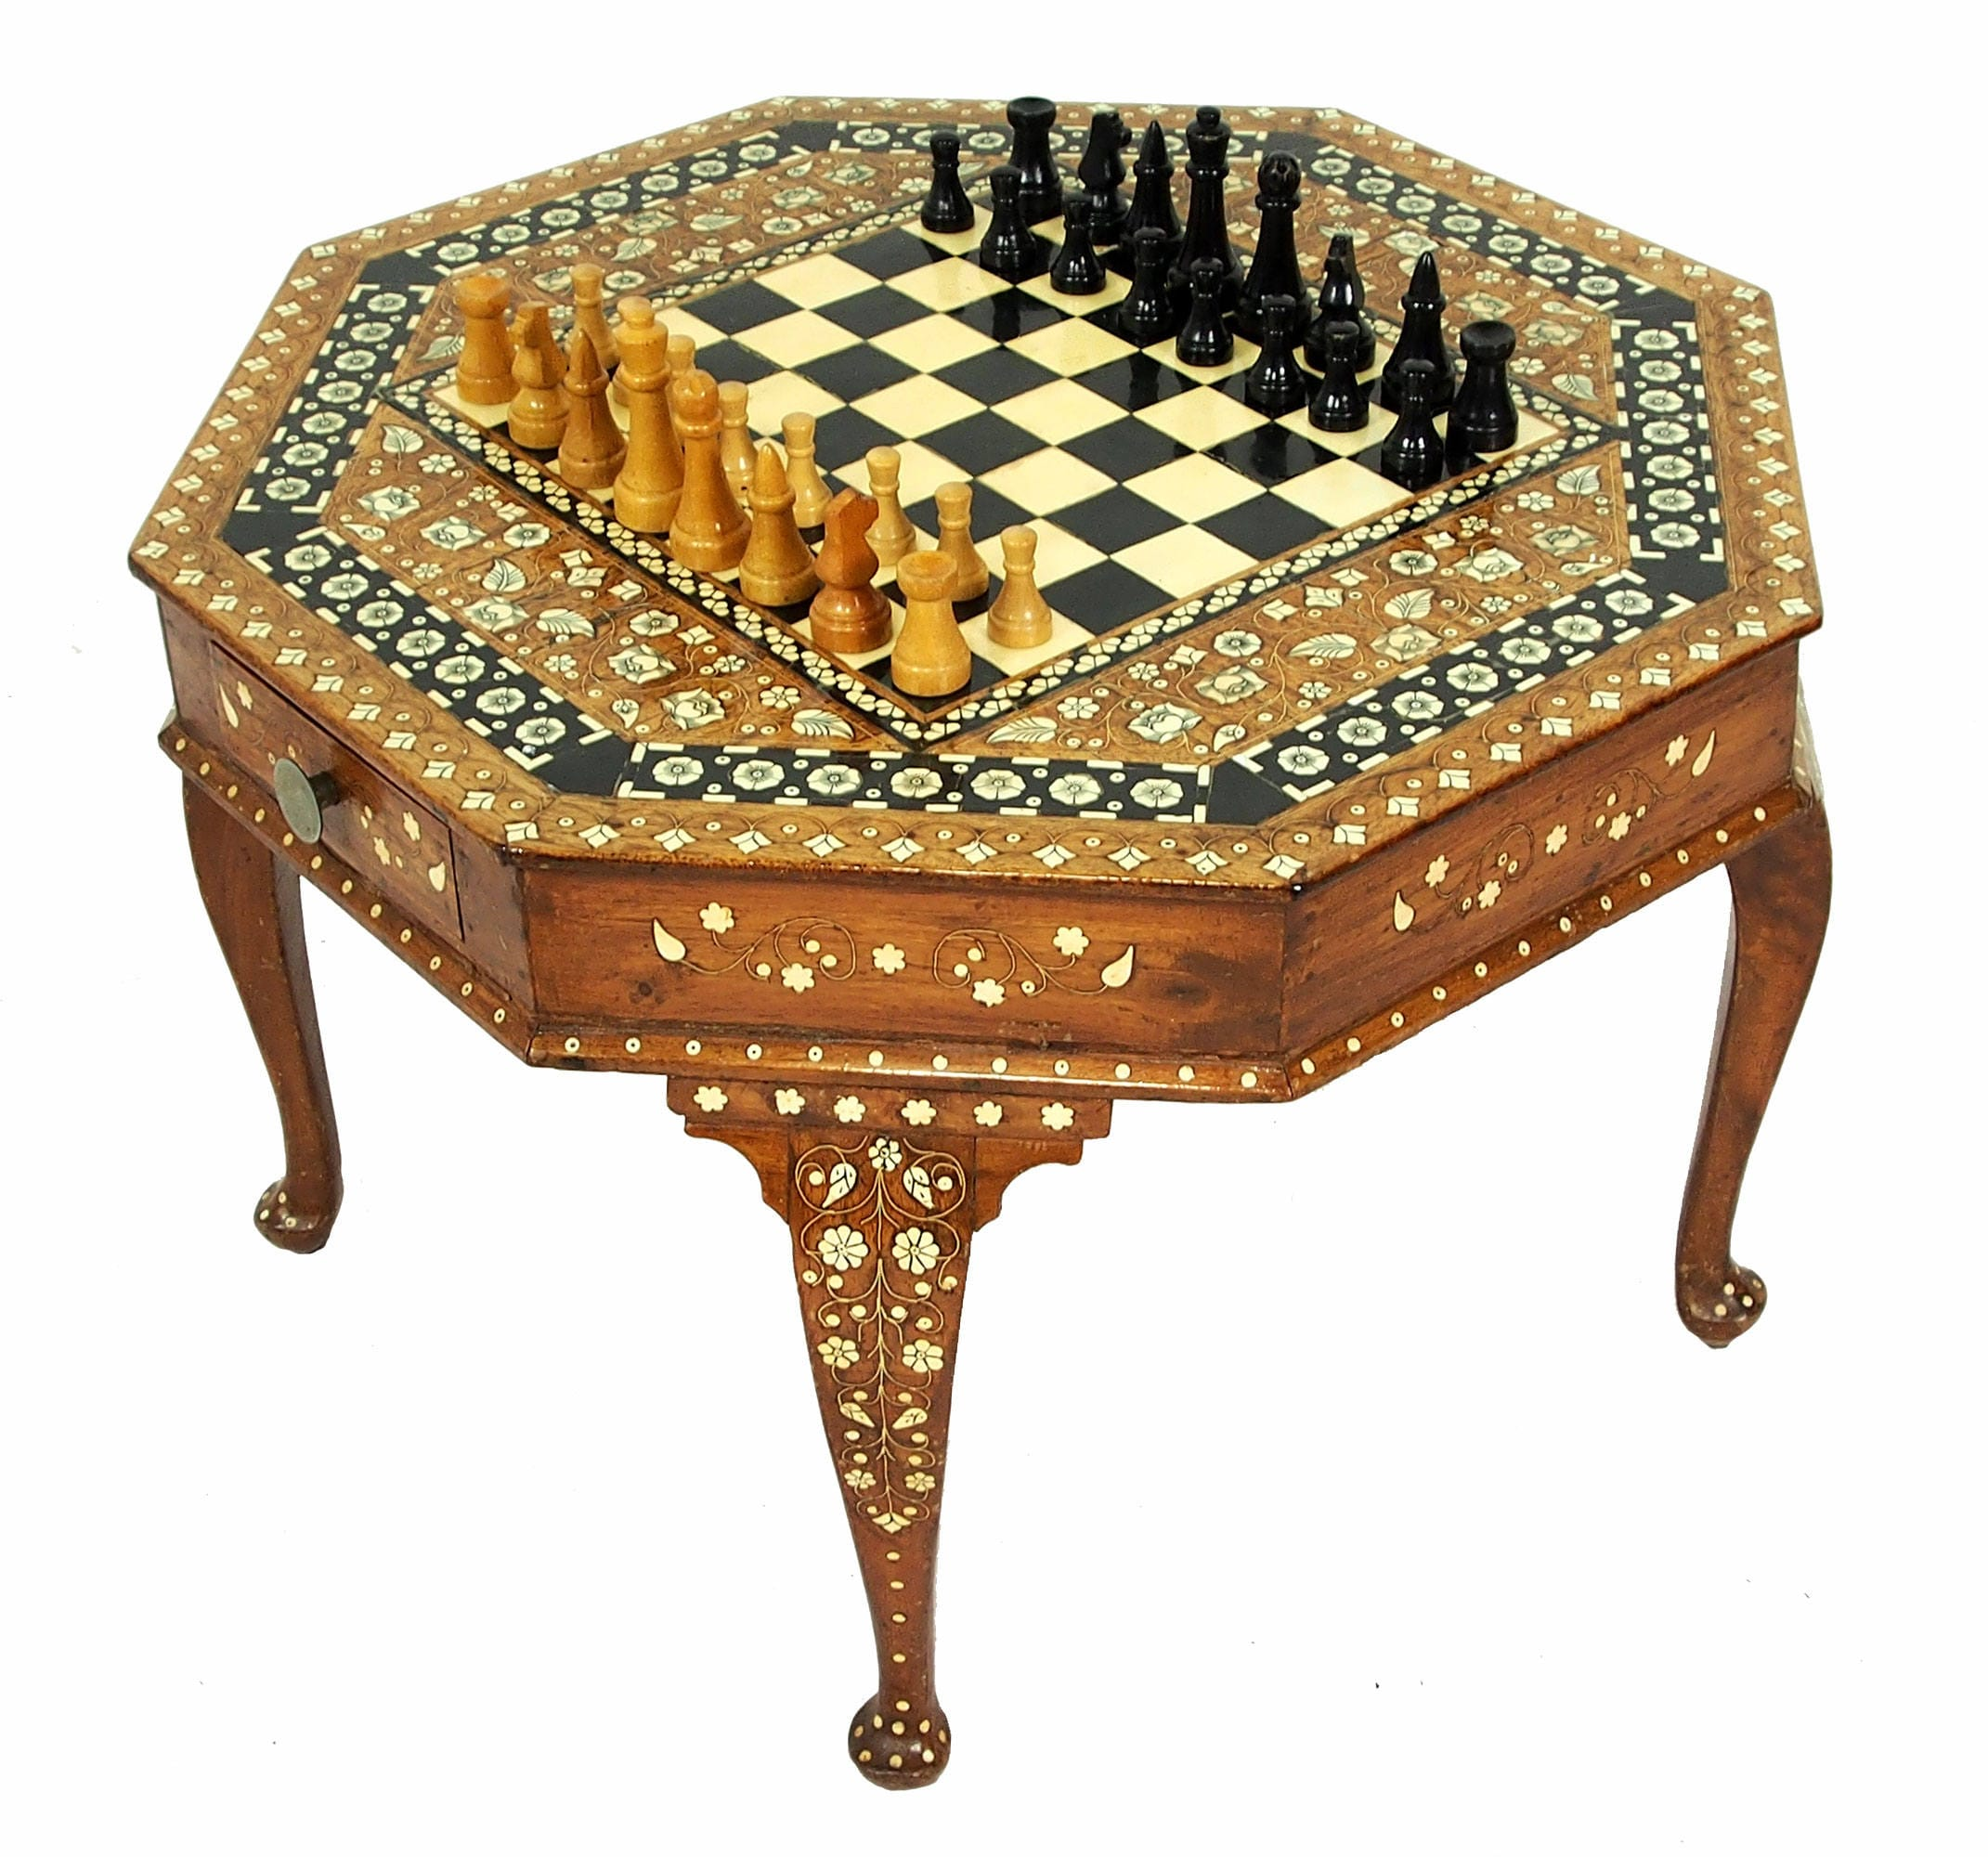 Gorgeous Antique Anglo Indian Vintage Bone Inlay Table chess